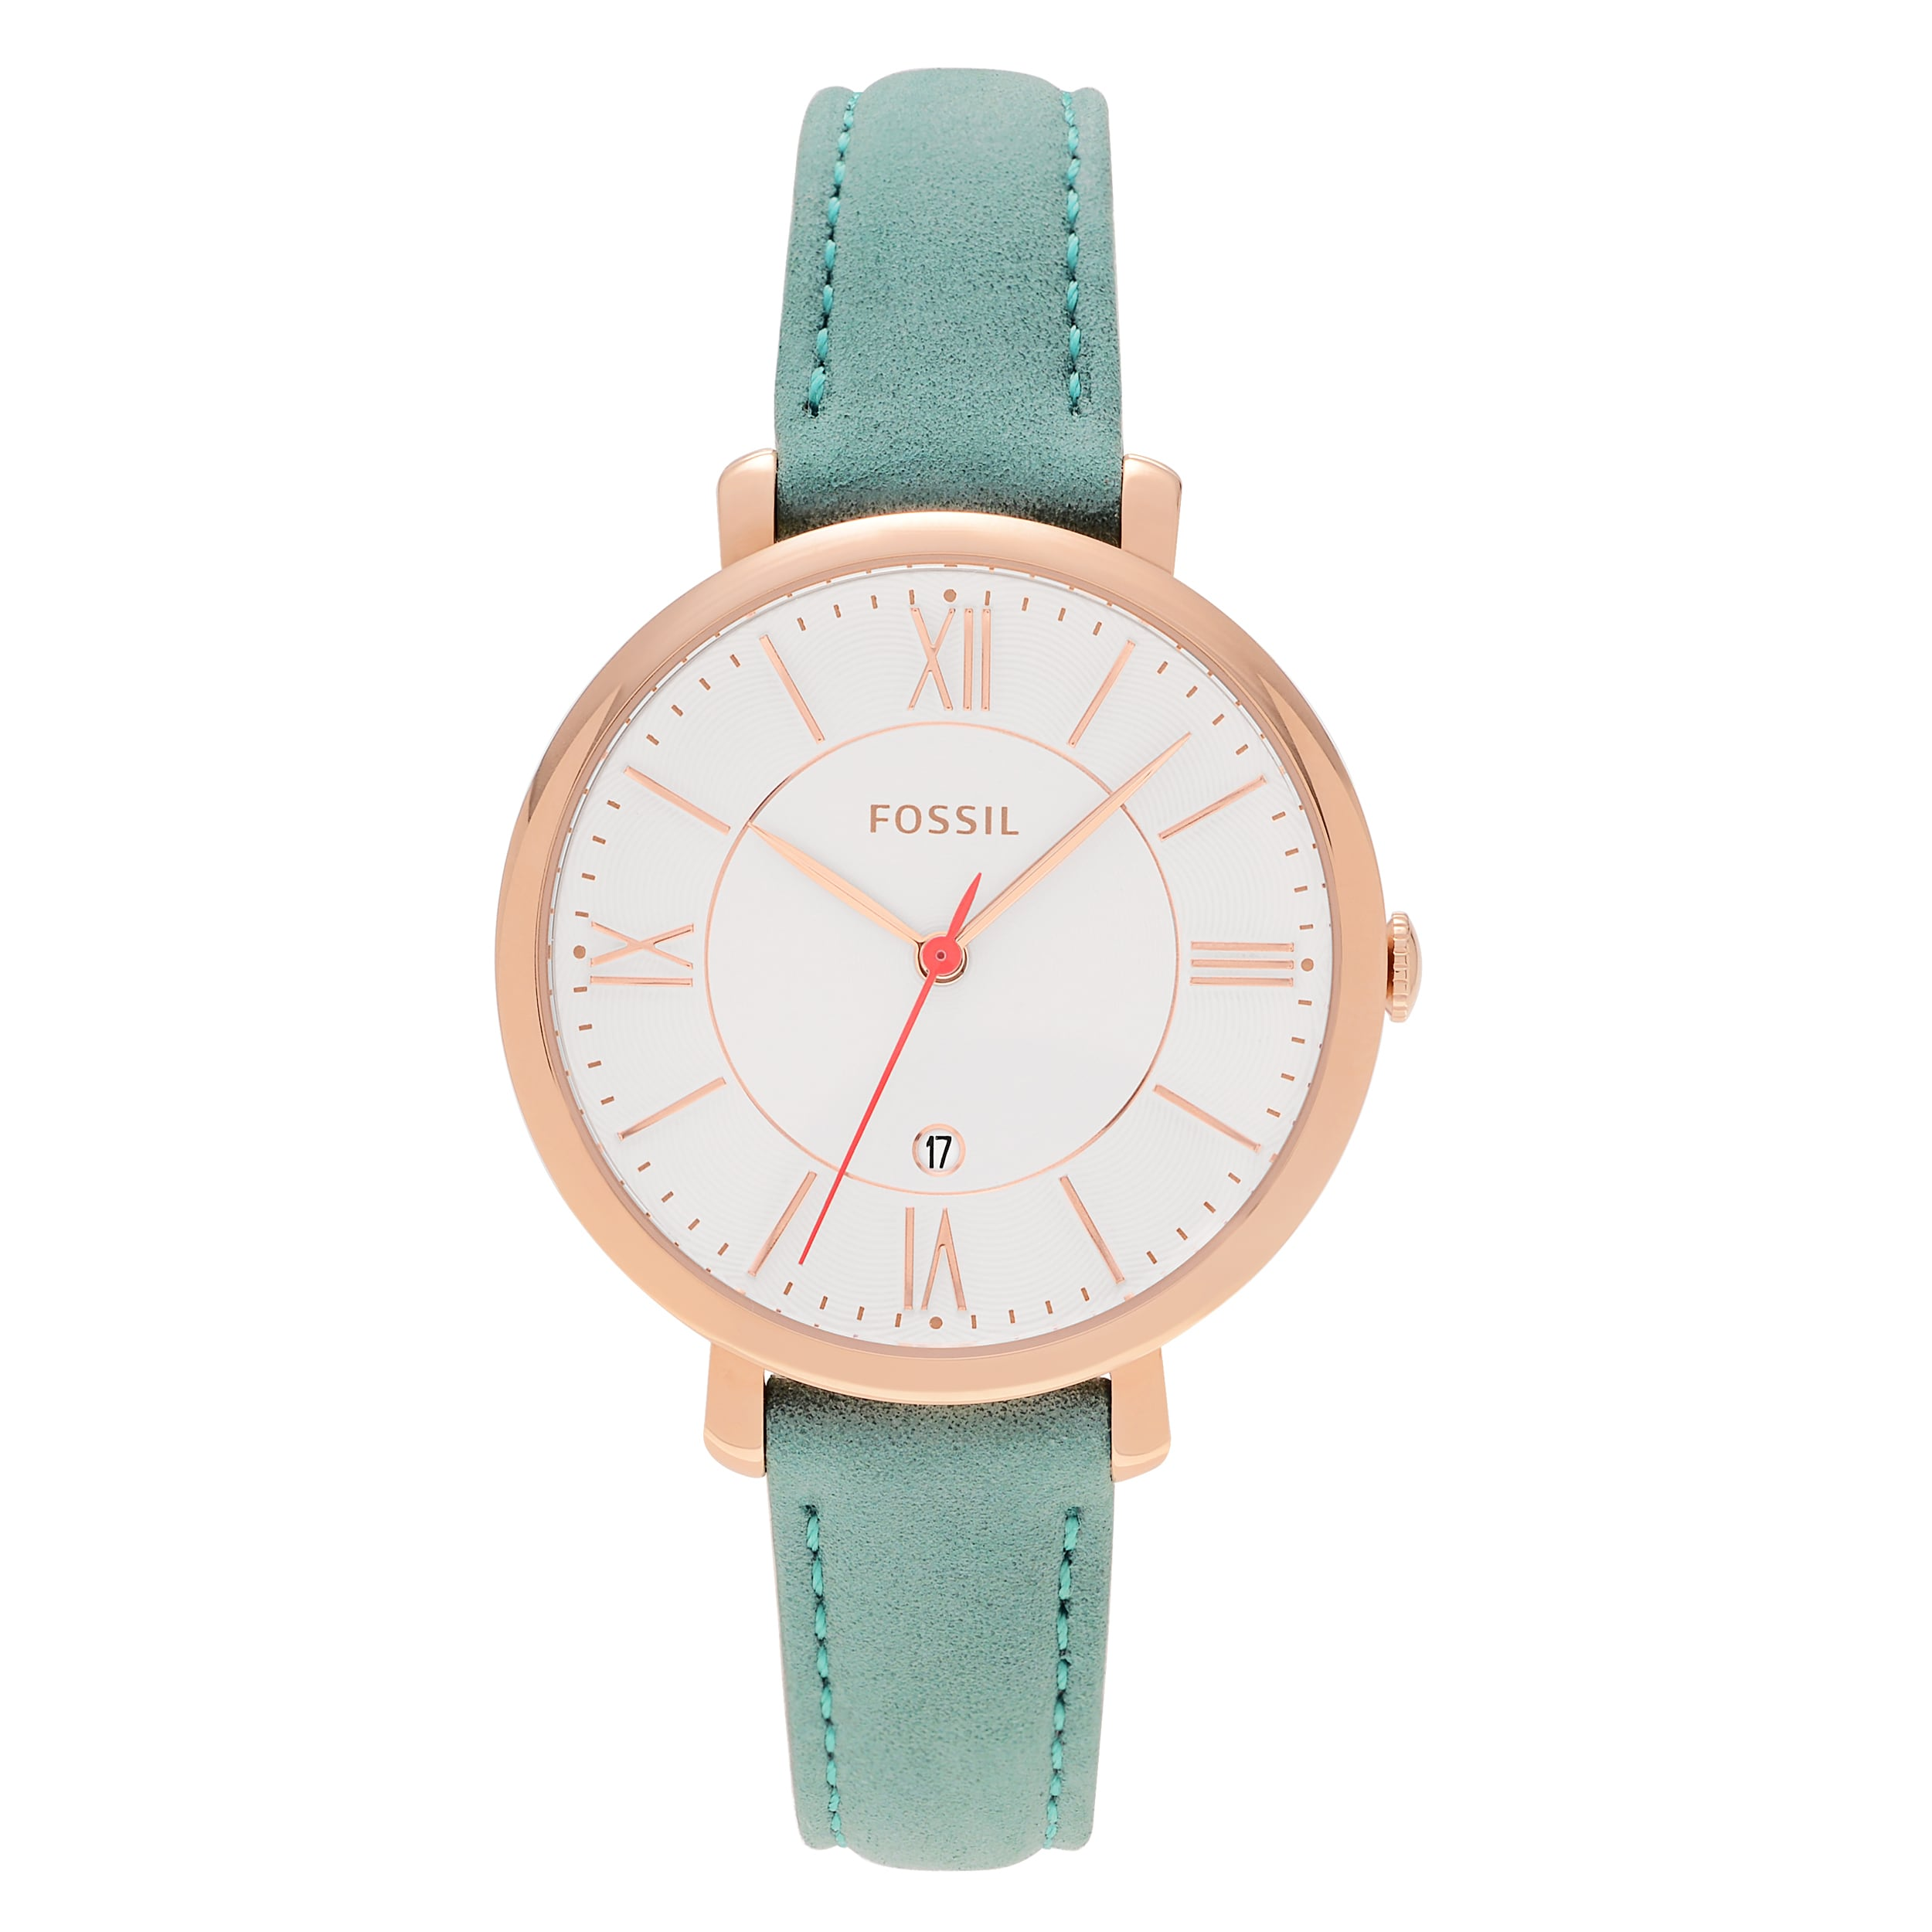 Fossil Women's ES4149 'Jacqueline' Rose Goldtone Stainles...